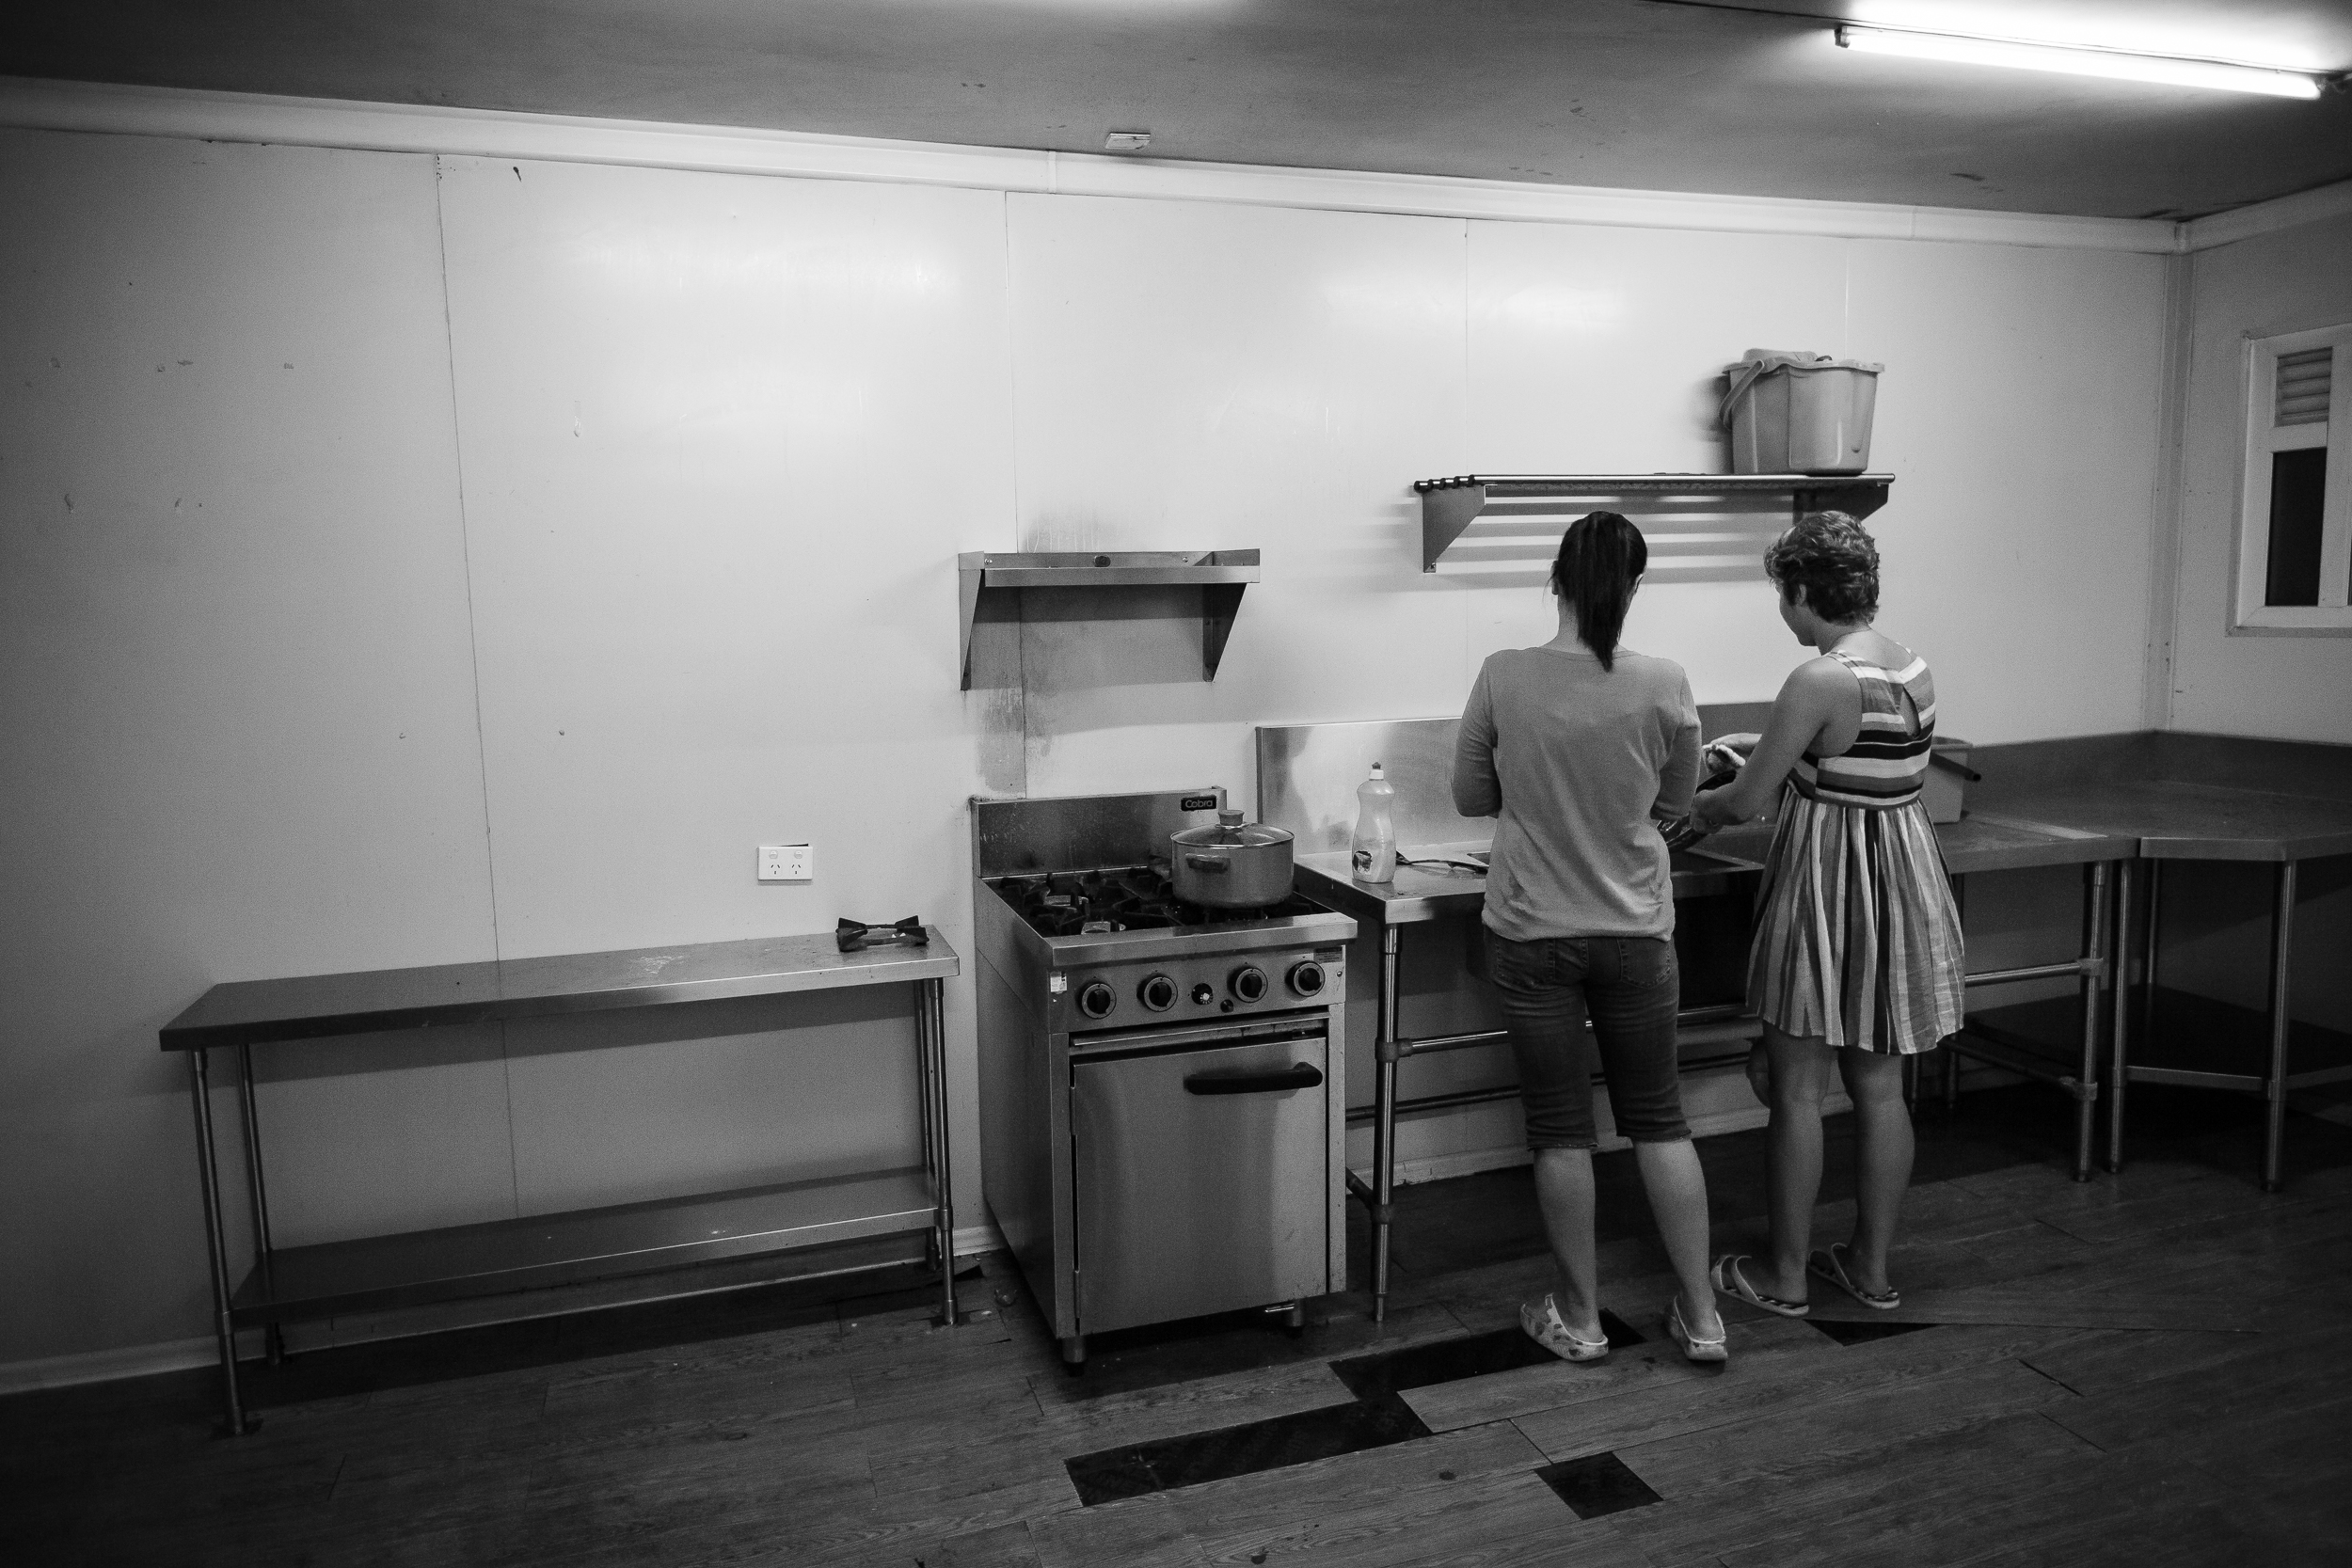 Anibare camp has one sparse communal kitchen, that is often out of order, to serve all the families, which makes it very difficult to orchestrate cooking dinner. Many of the refugees have taken to cooking meals in their own bathrooms.